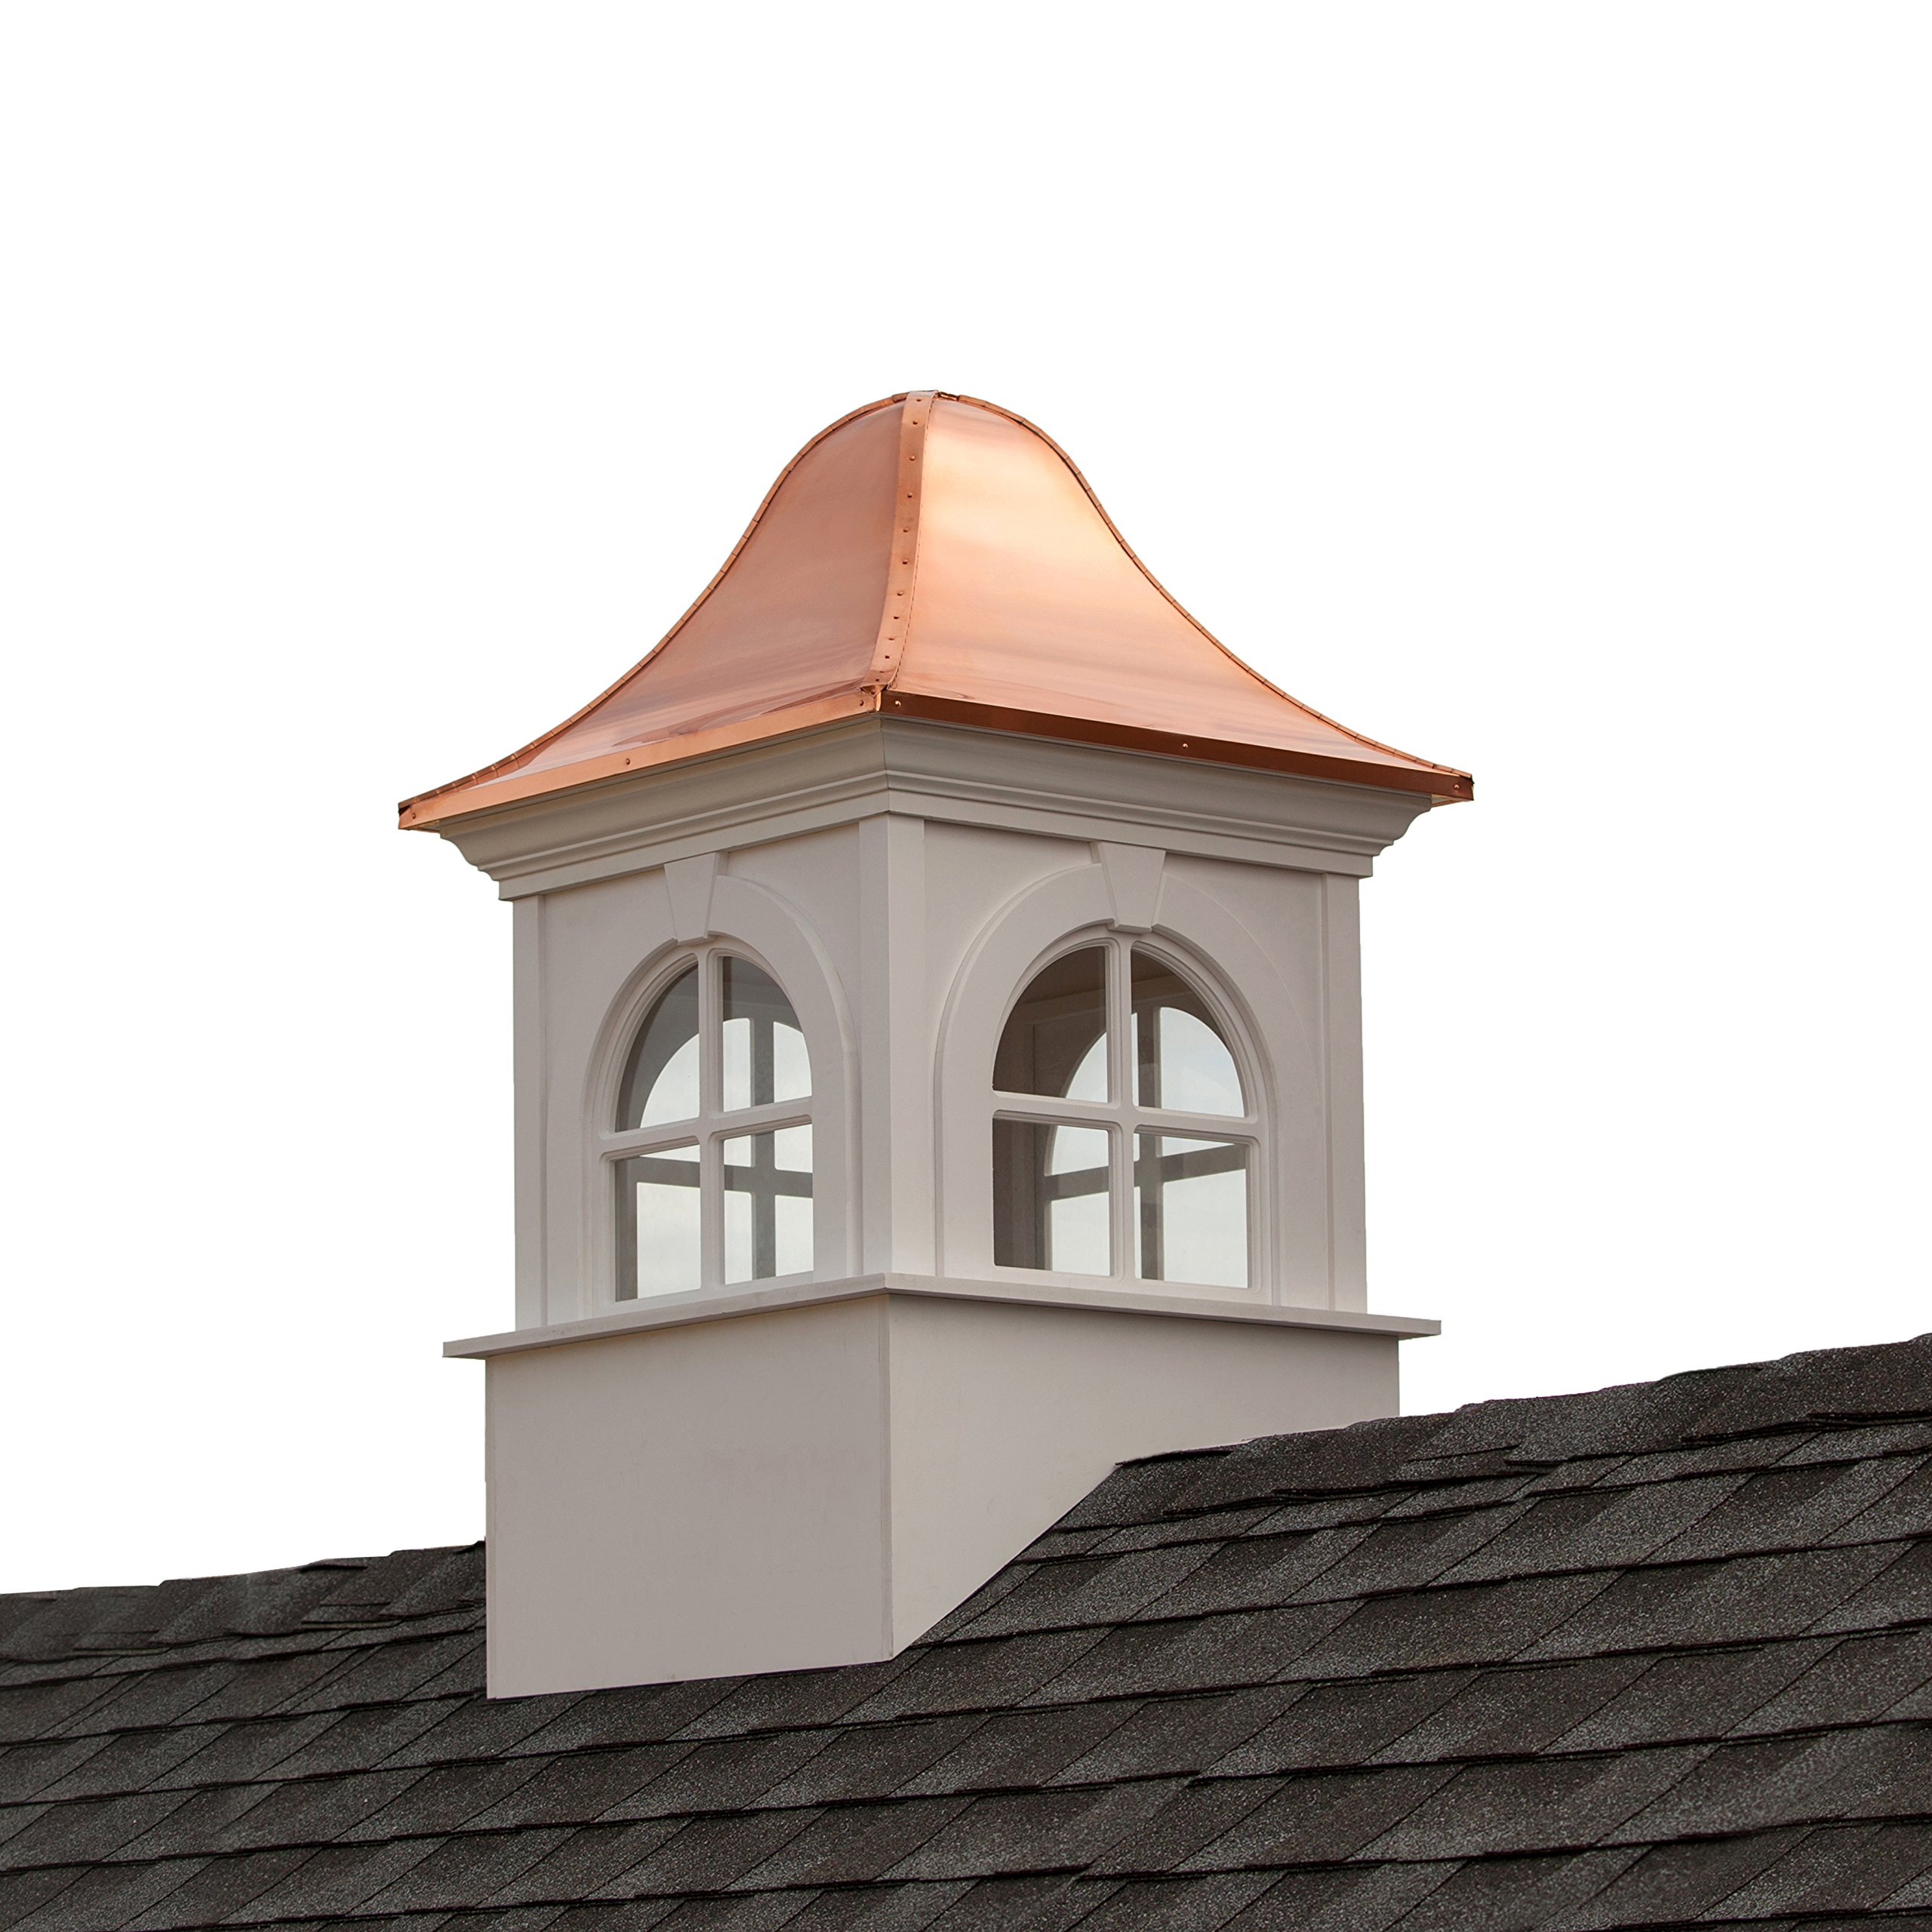 Smithsonian Washington Vinyl Cupola with Copper Roof 48'' x 79'' by Good Directions